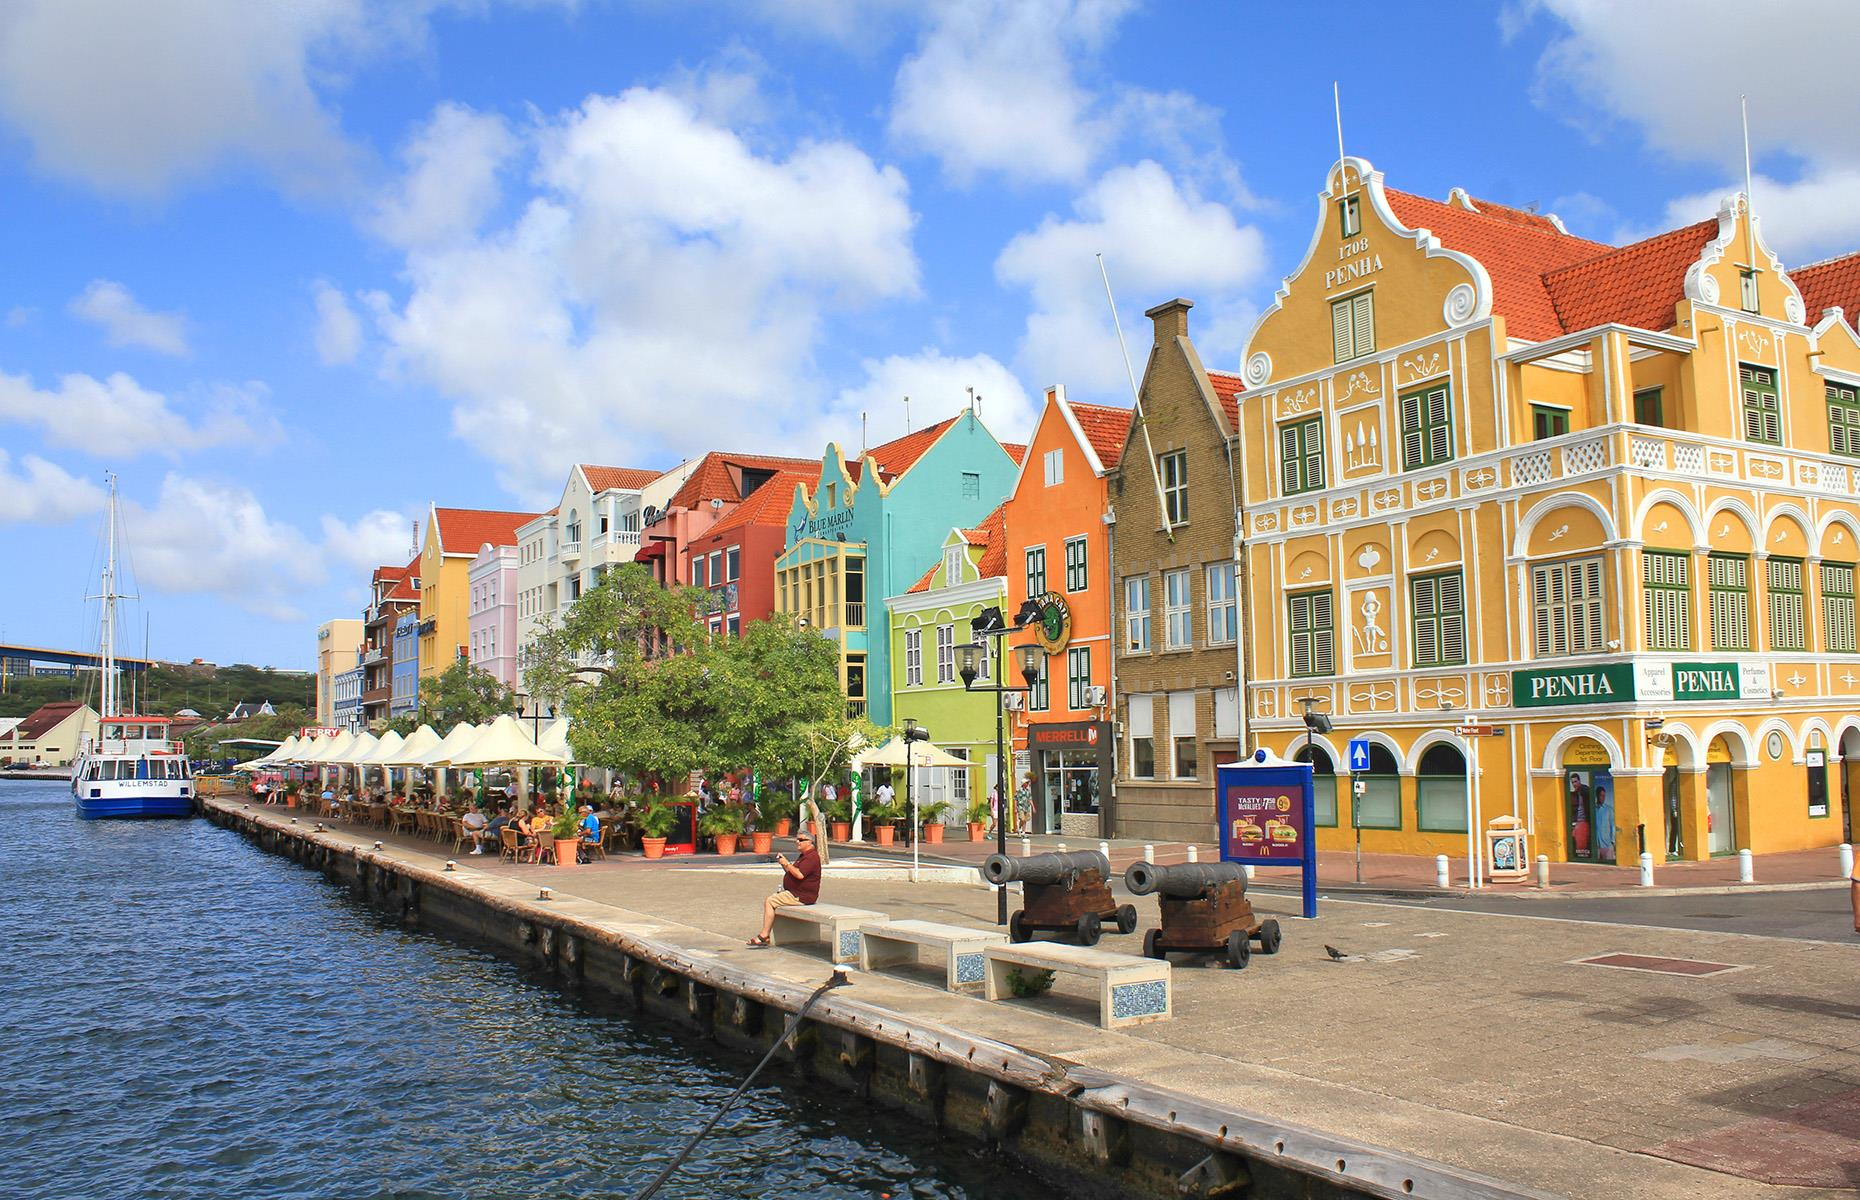 Slide 19 of 51: The history of Willemstad's colored houses sounds like an urban legend, but the buildings in this UNESCO-protected crowd-free Caribbean town were initially painted in an attempt to cure a headache. Back when the Dutch ruled Curaçao, the governor was convinced his migraines were caused by the tropical sun's rays reflecting off the whitewash buildings. All citizens were commanded to paint their homes anything but blinding white, resulting in this rainbow paradise. Take a look at the world's most colorful destinations